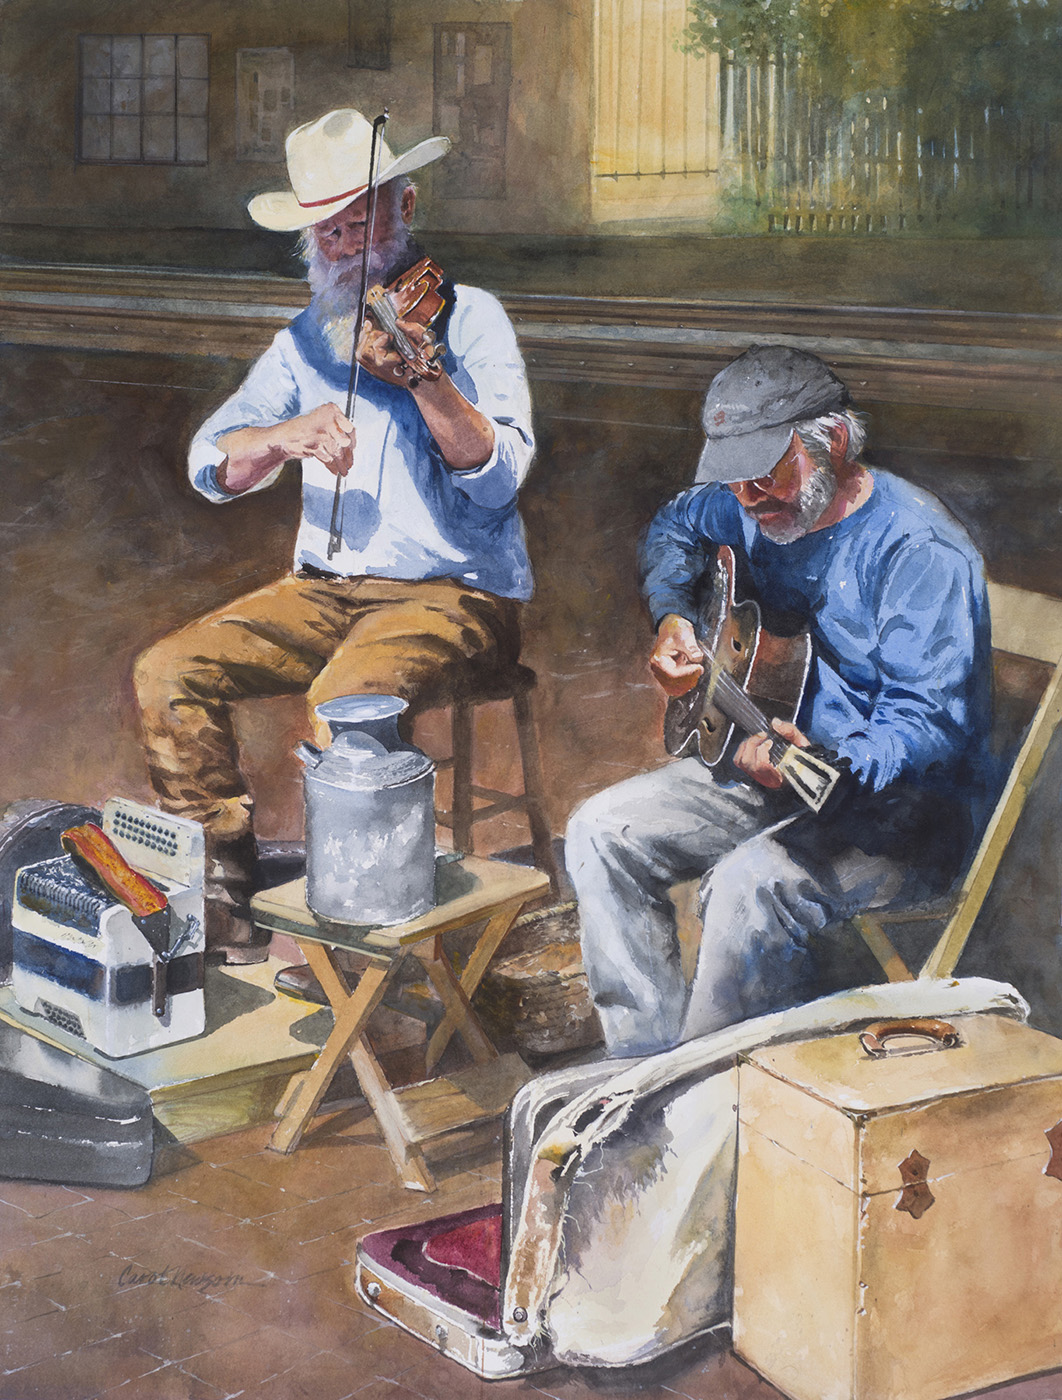 I found these guys playing music on the streets of Santa Fe. What a treat! Watercolor 19 x 27